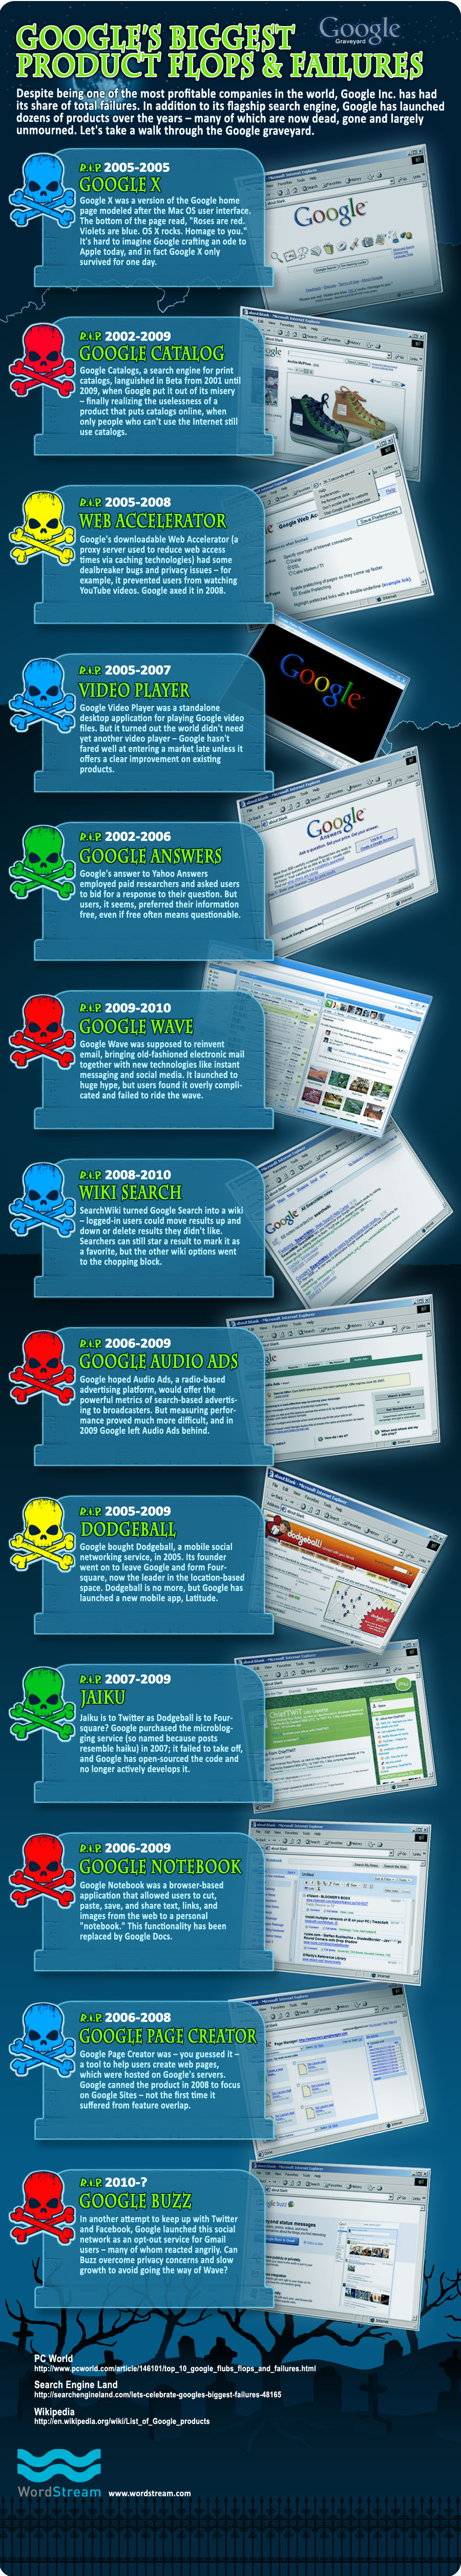 Google's Graveyard : Flop and Fail Products Till 2010